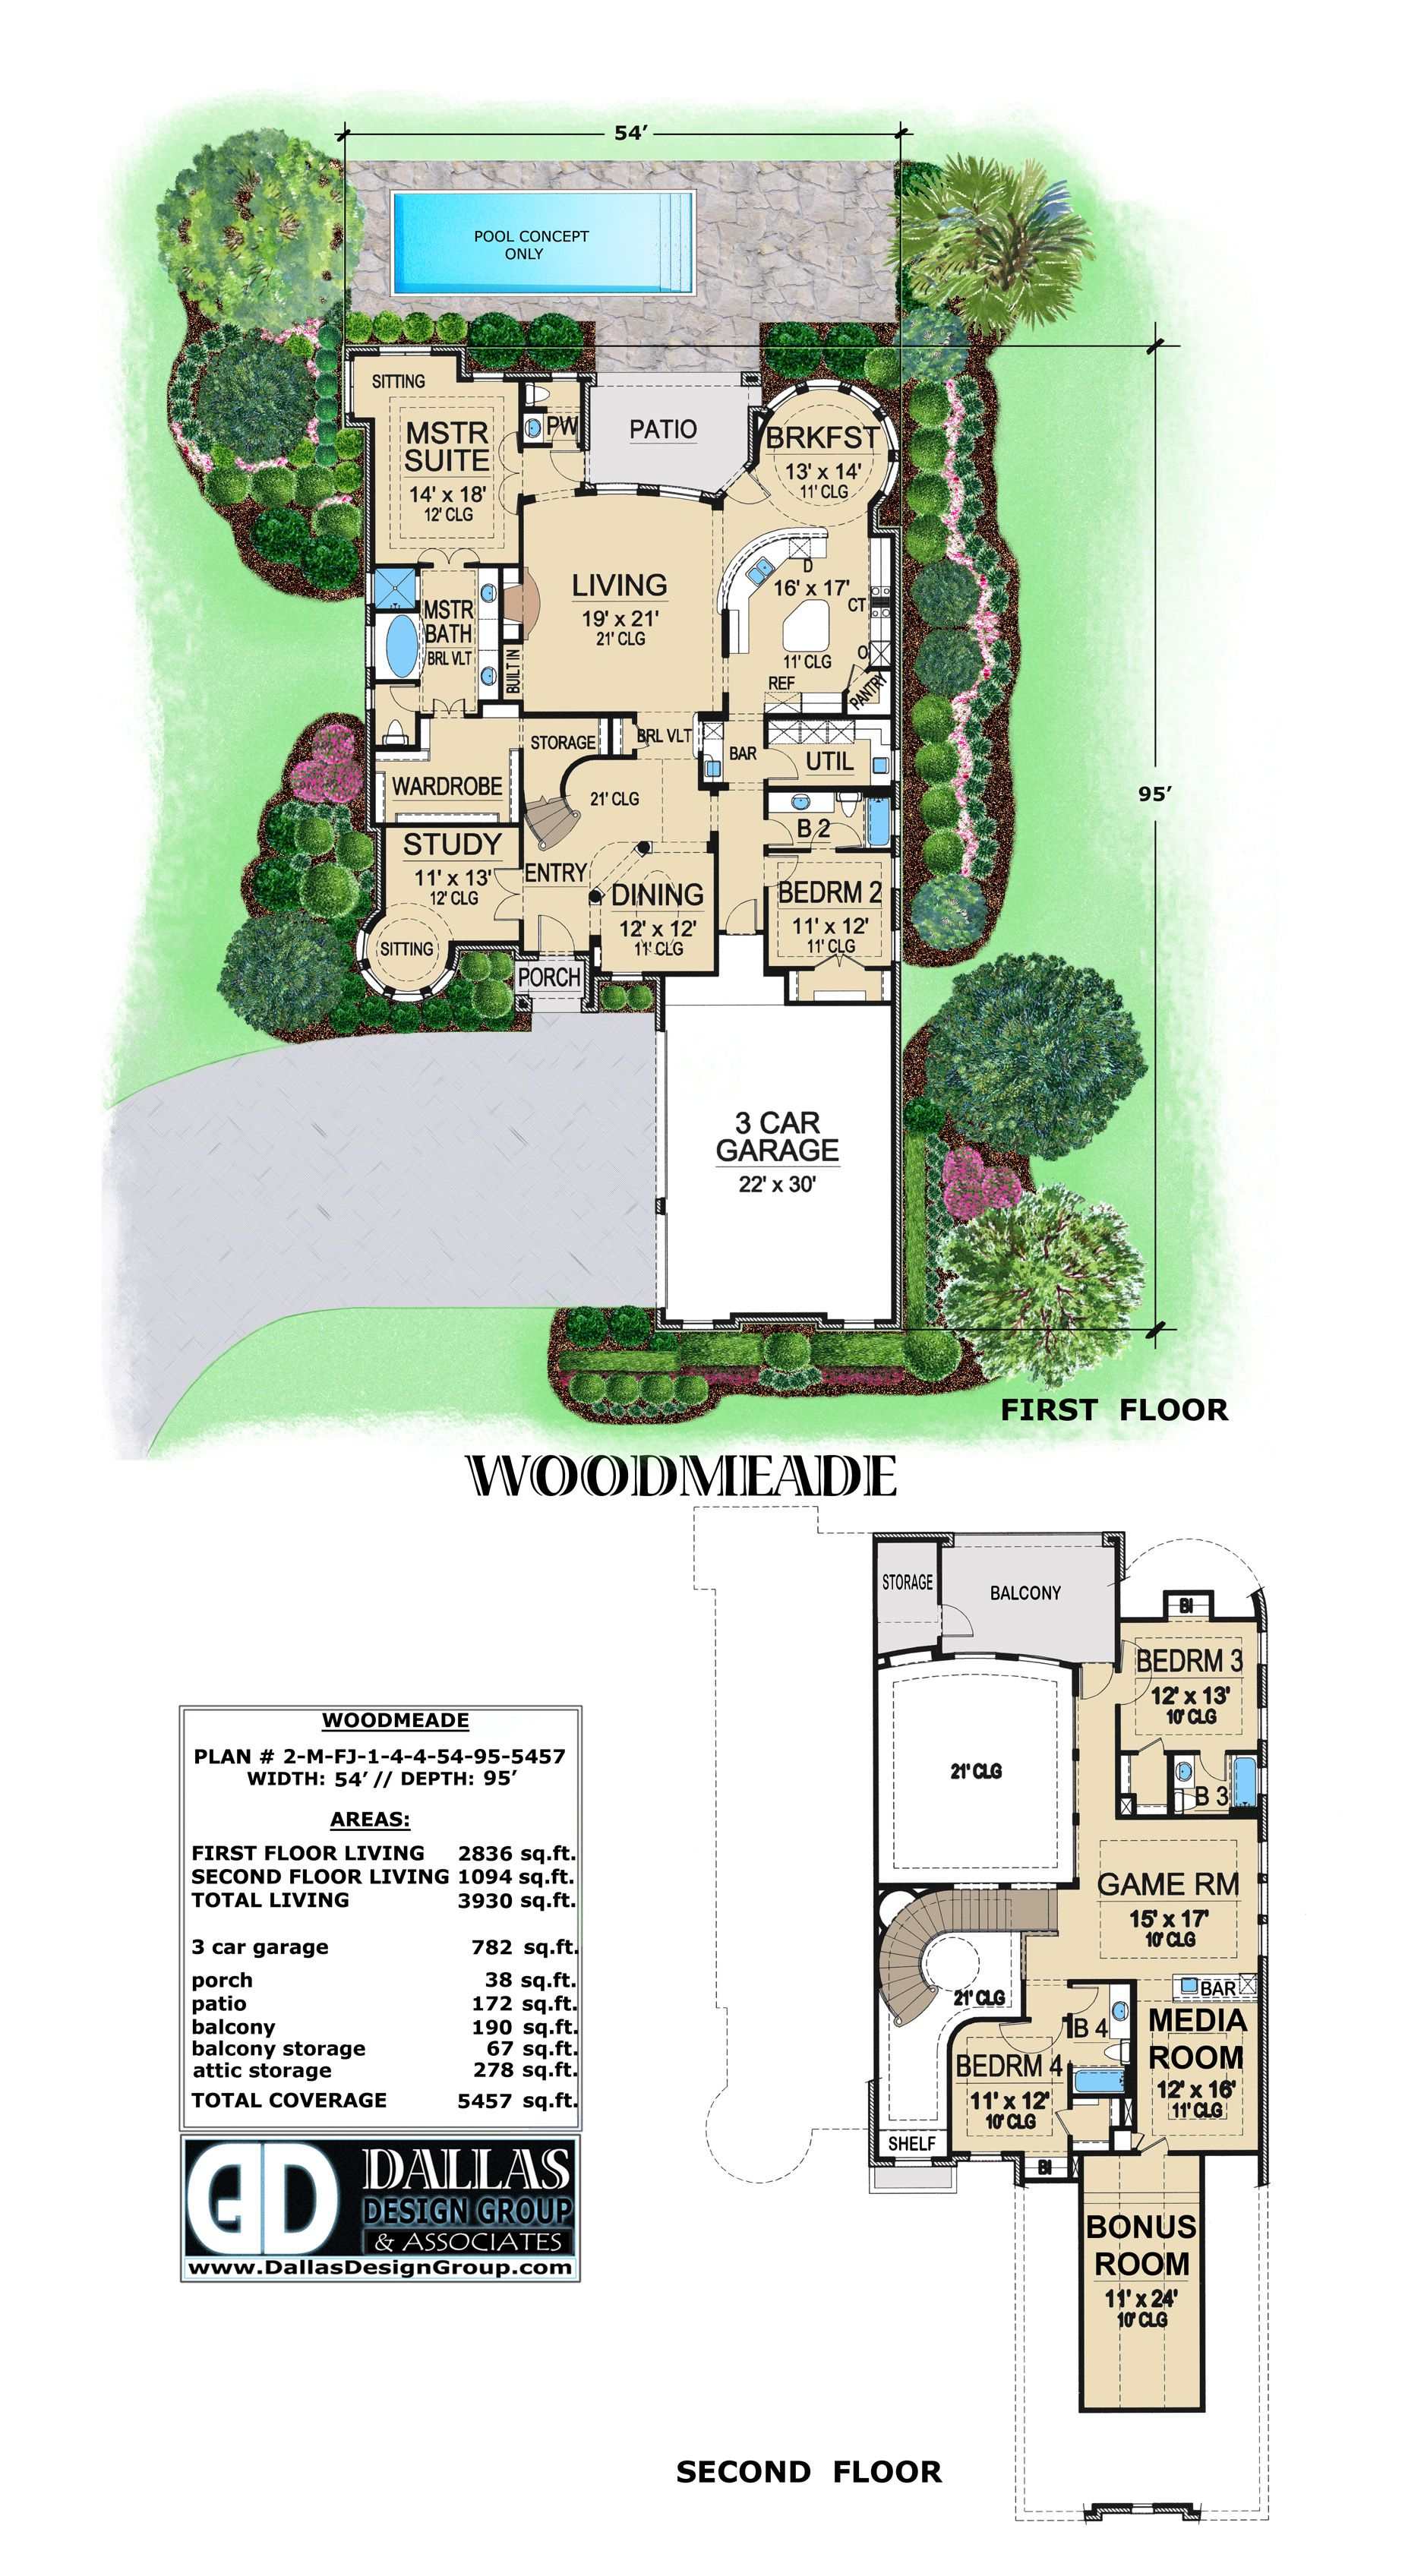 Woodmeade House Plan From Dallas Design Group Available At Dallasdesigngroup Com Custom Home Plans Design Stock Plans